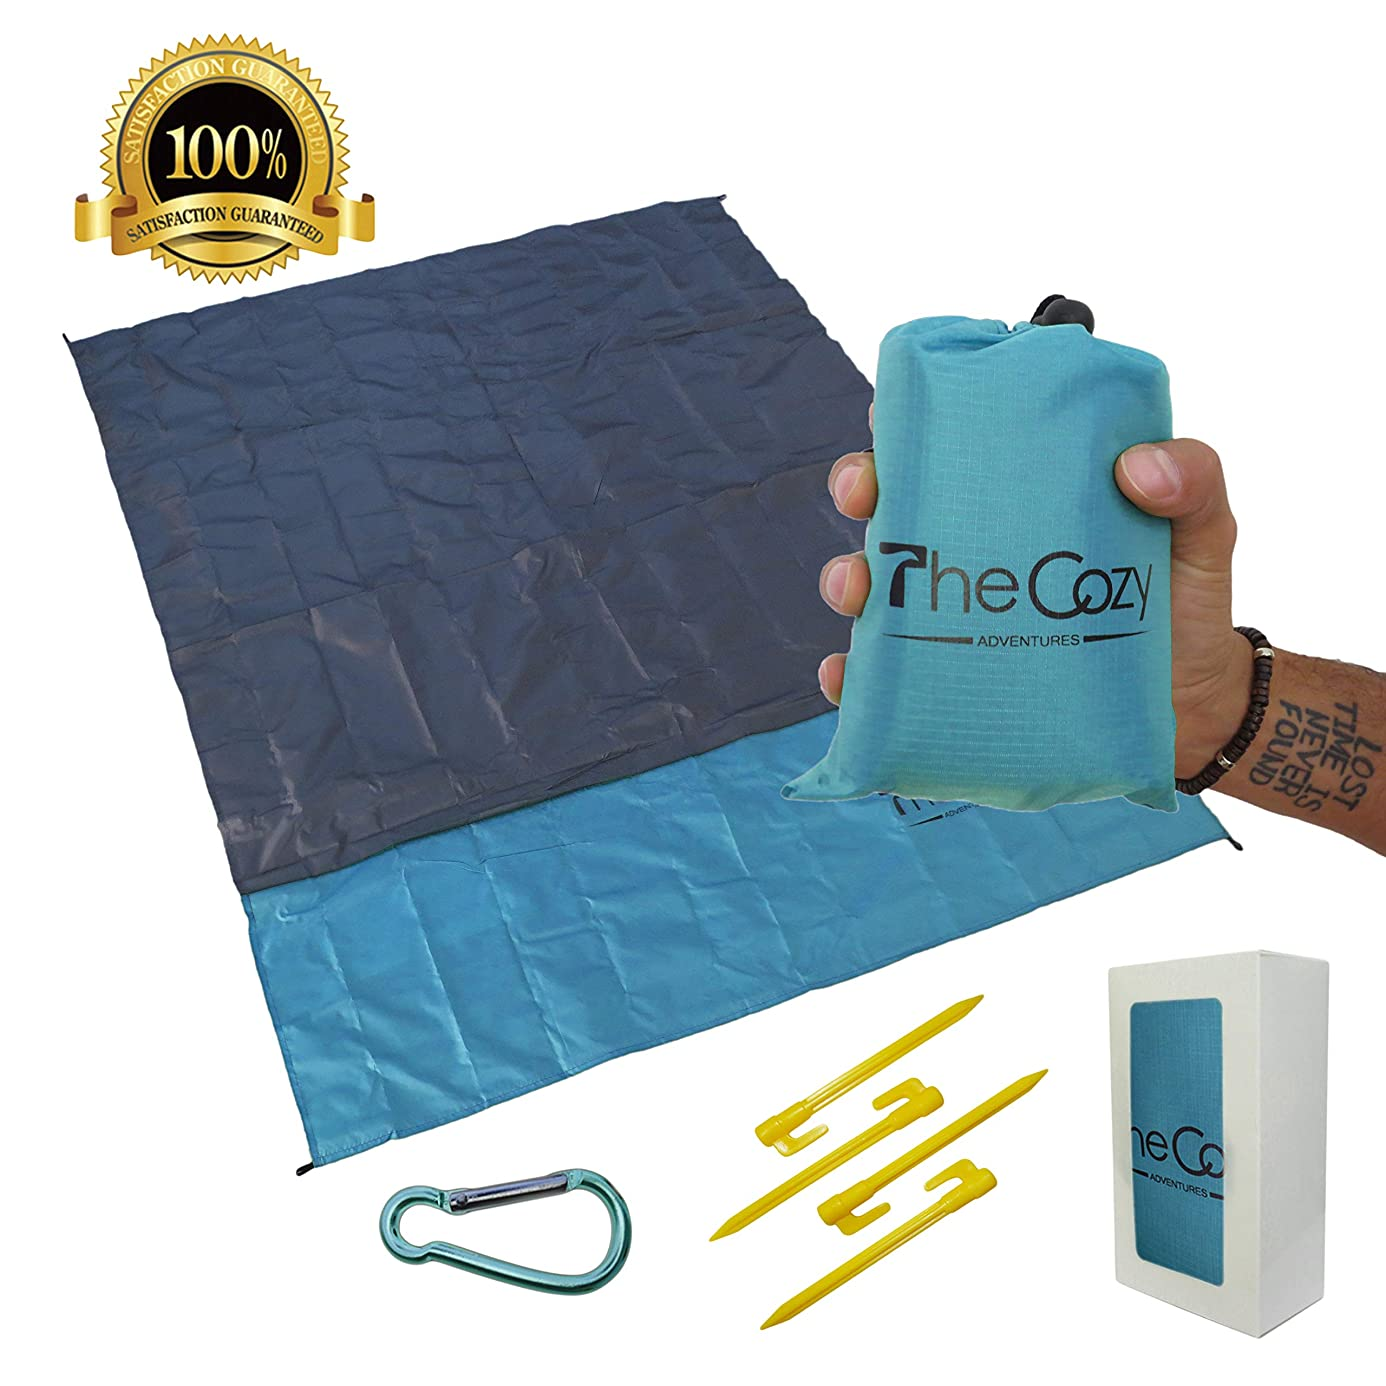 Sand Free Compact Beach Blanket - Pocket Picnic Sheet For Outdoor Multiple Use   Best Mat For Travel & Festivals, Soft & Quick Drying With 4 Portable Tent Pegs and a Unique Gift Box